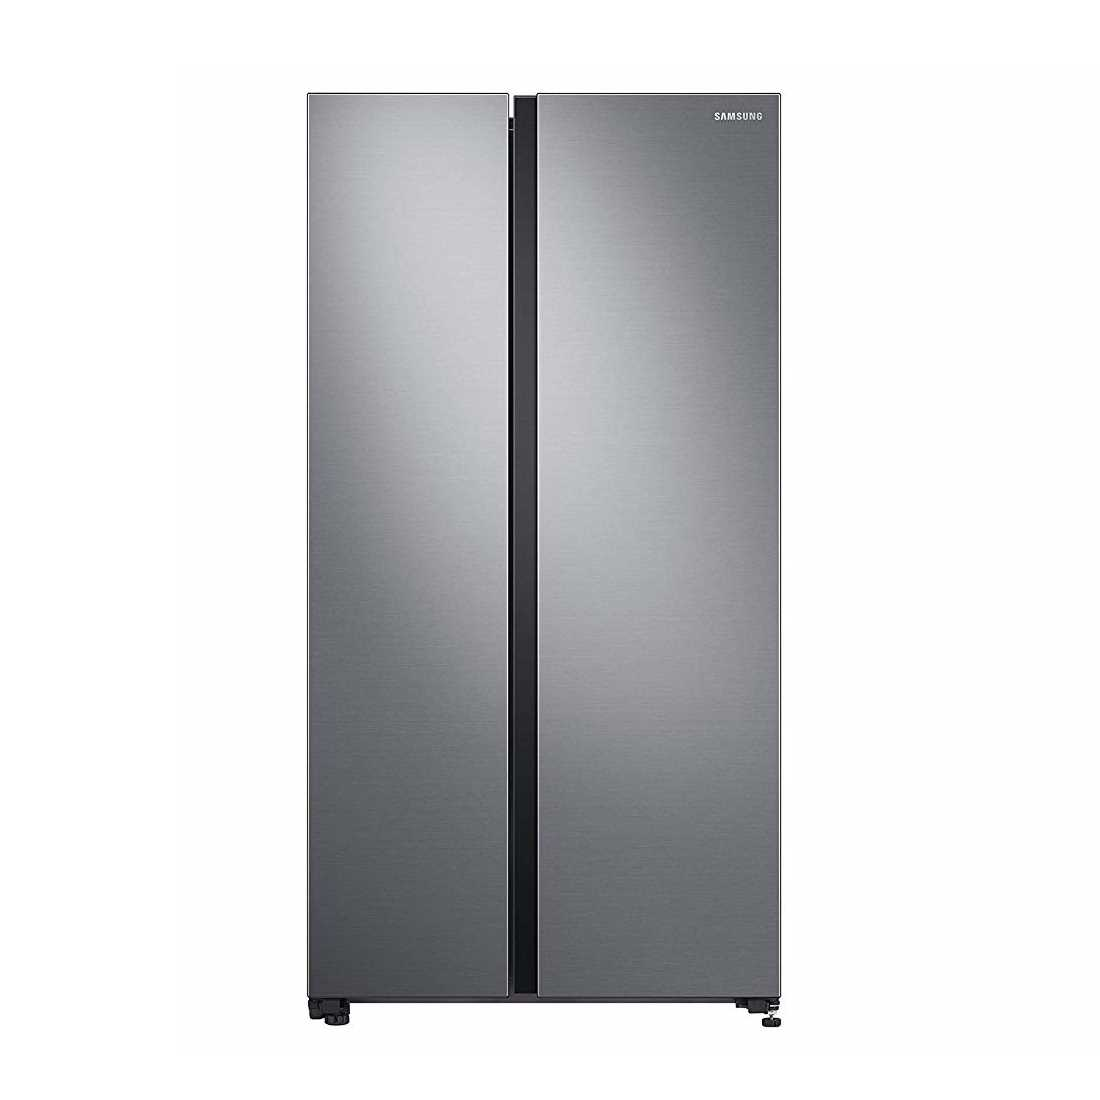 Samsung RS72R5001M9TL 700 Litre Inverter Frost Free Side By Side Refrigerator